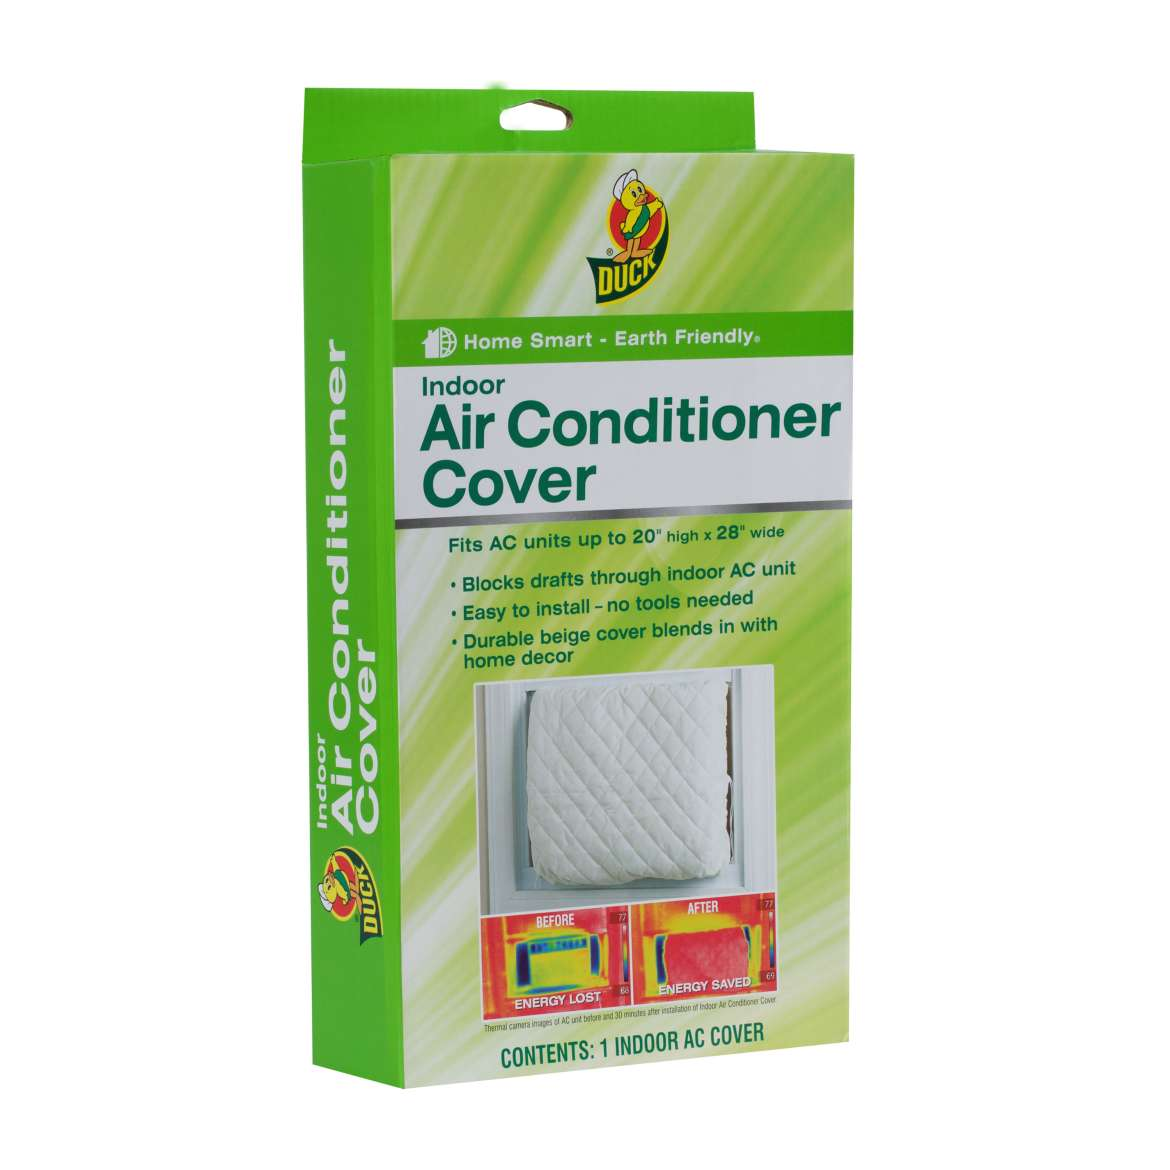 Indoor Window Air Conditioner Cover Image